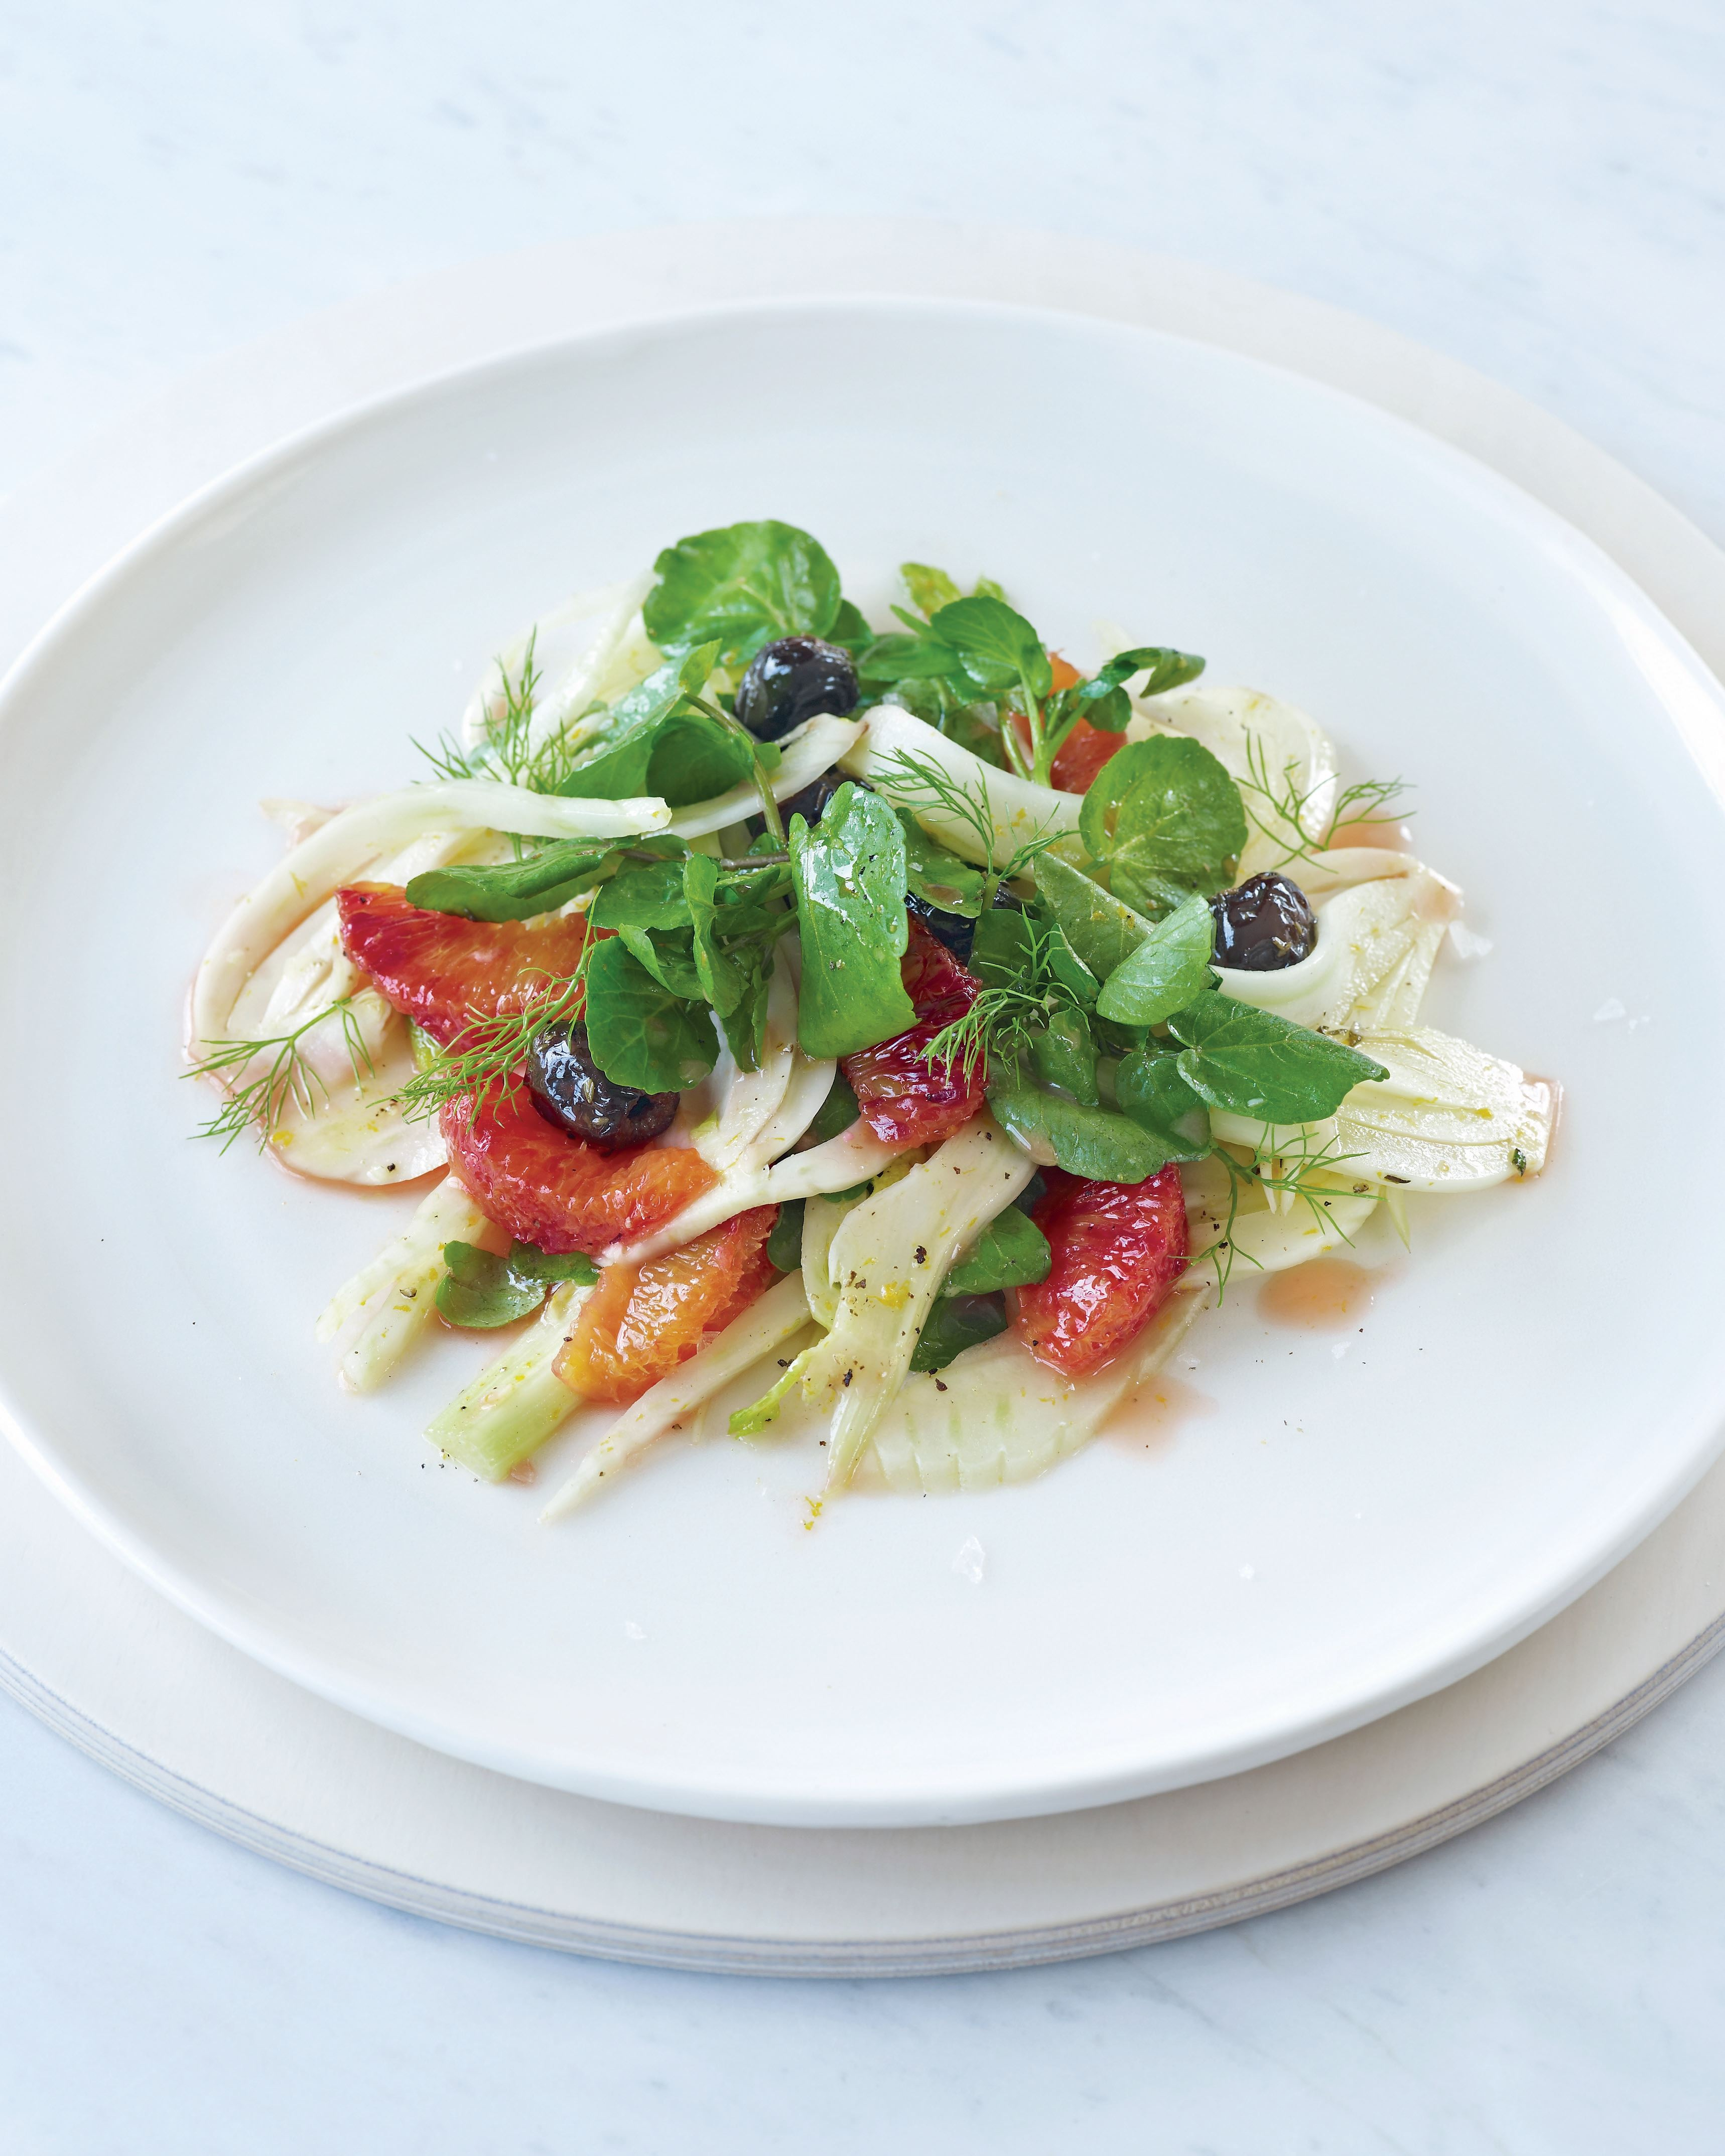 Fennel salad with blood orange, watercress and black olives